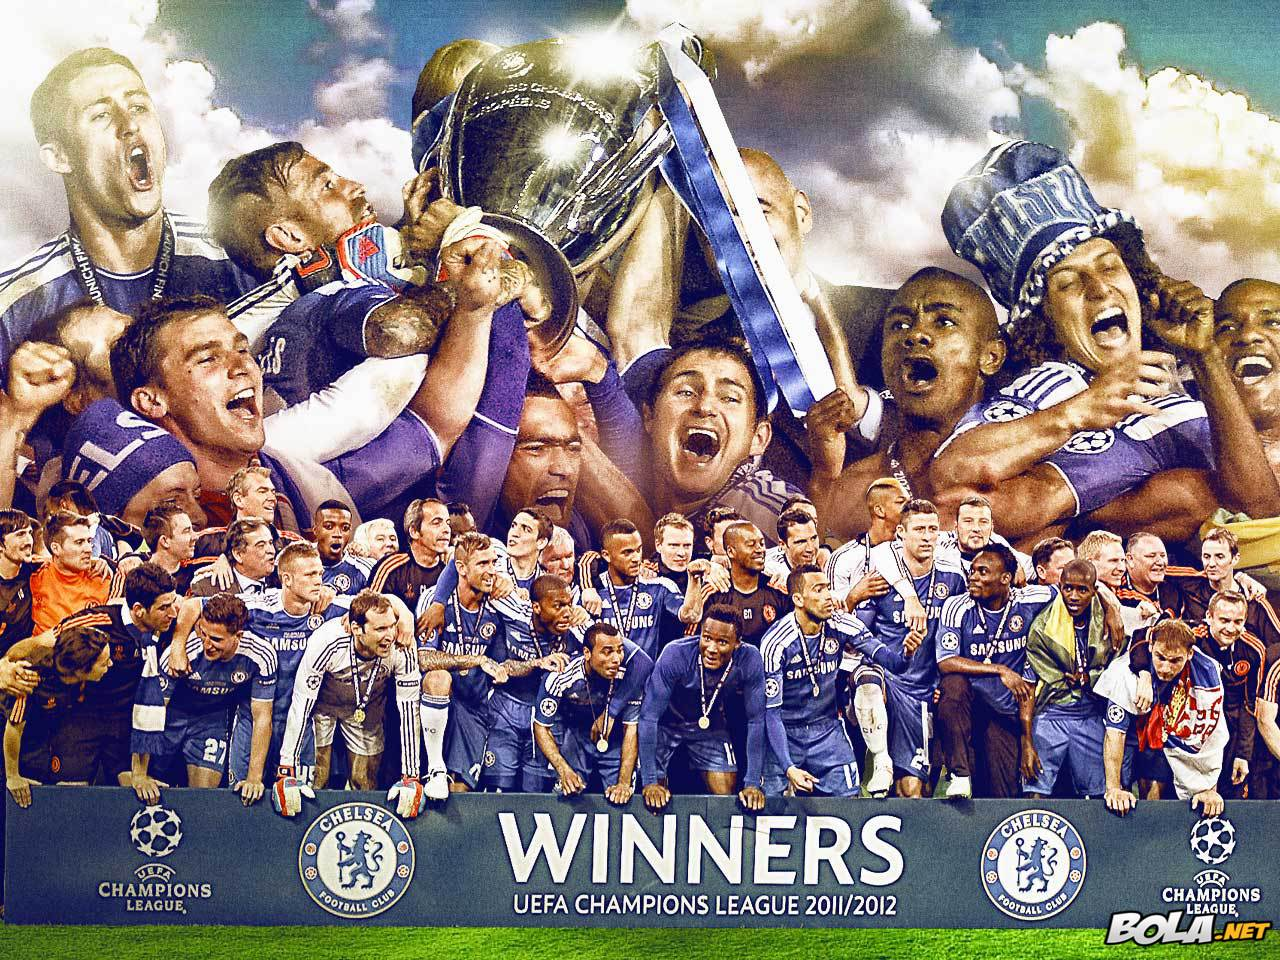 http://1.bp.blogspot.com/-klvx6LCqGvo/T73HFqlpaDI/AAAAAAAAAHs/wwqcdW7wg7w/s1600/chelsea+champion+league+europe+wallpaper+final.jpg